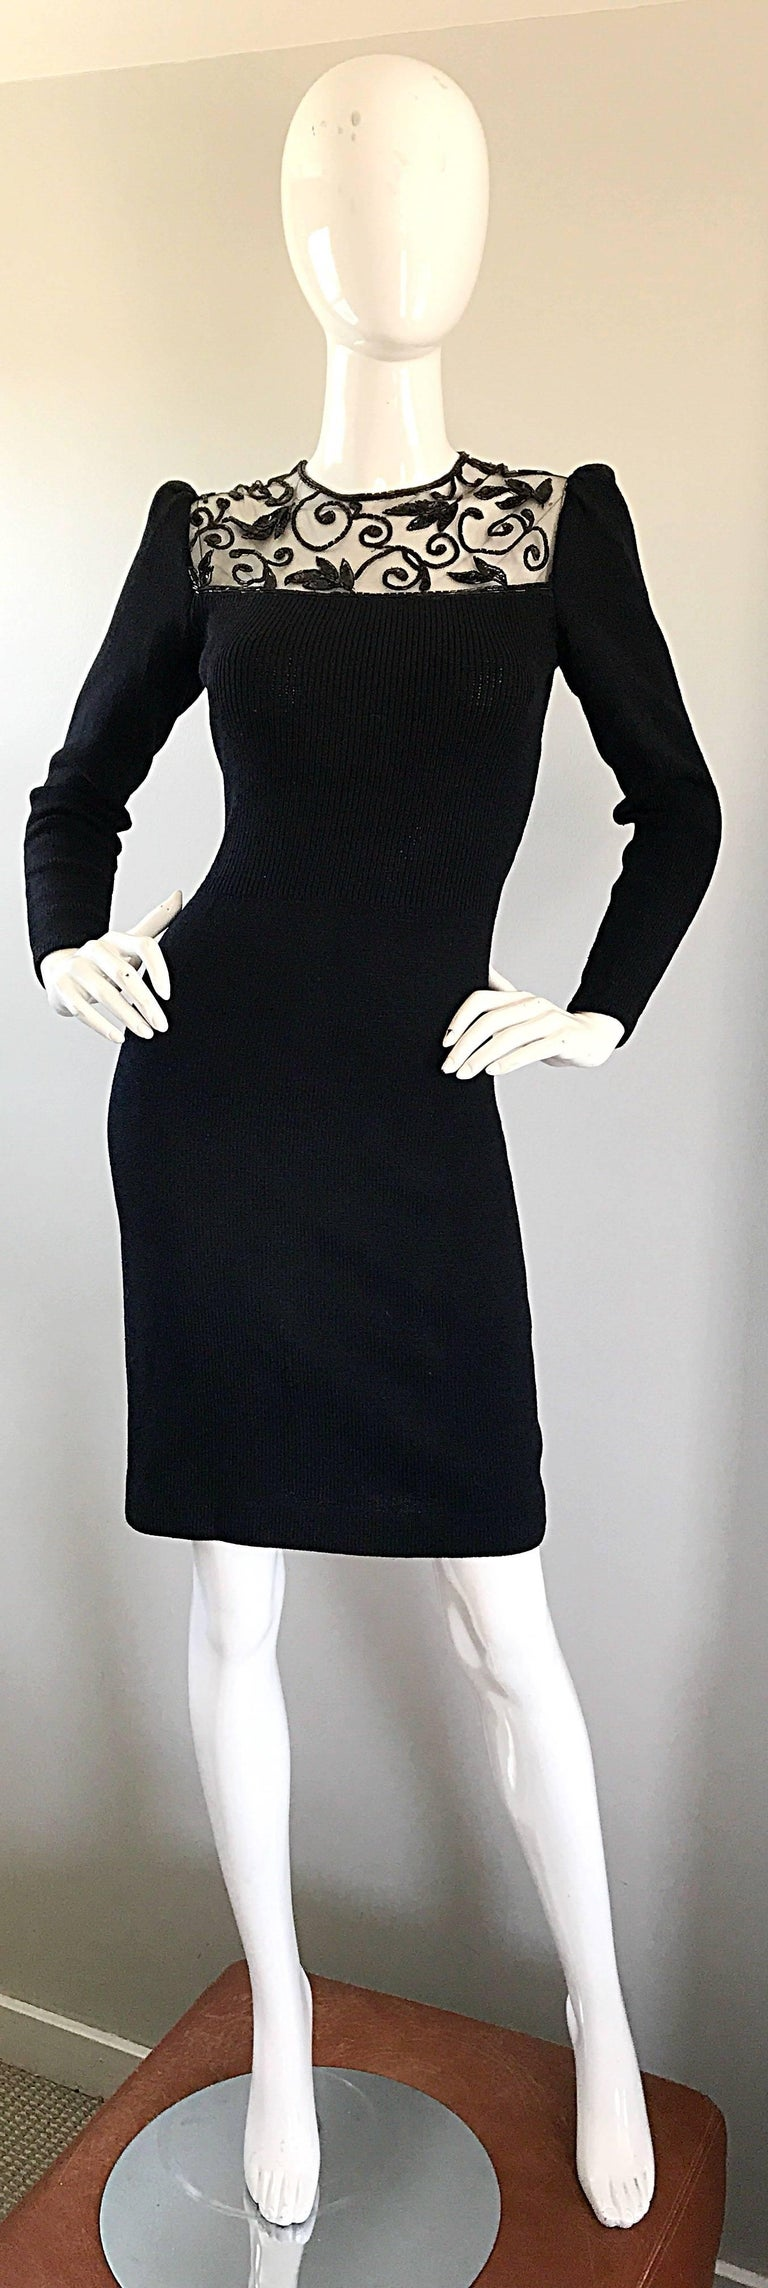 Vintage St John by Marie Gray Black Santana Knit Sequin Cut-Out Back 1990s Dress For Sale 6